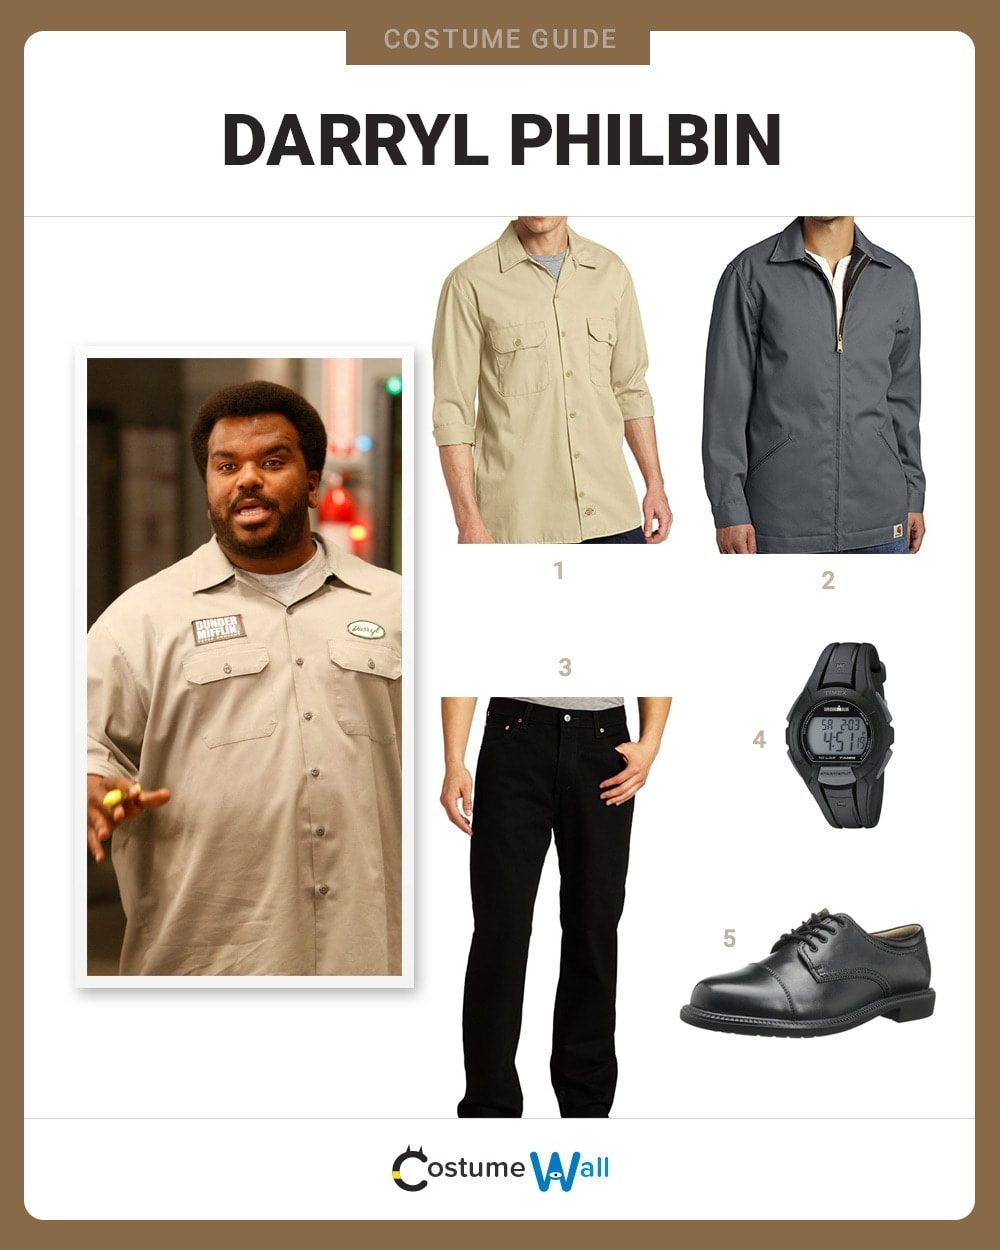 Darryl Philbin Costume Guide